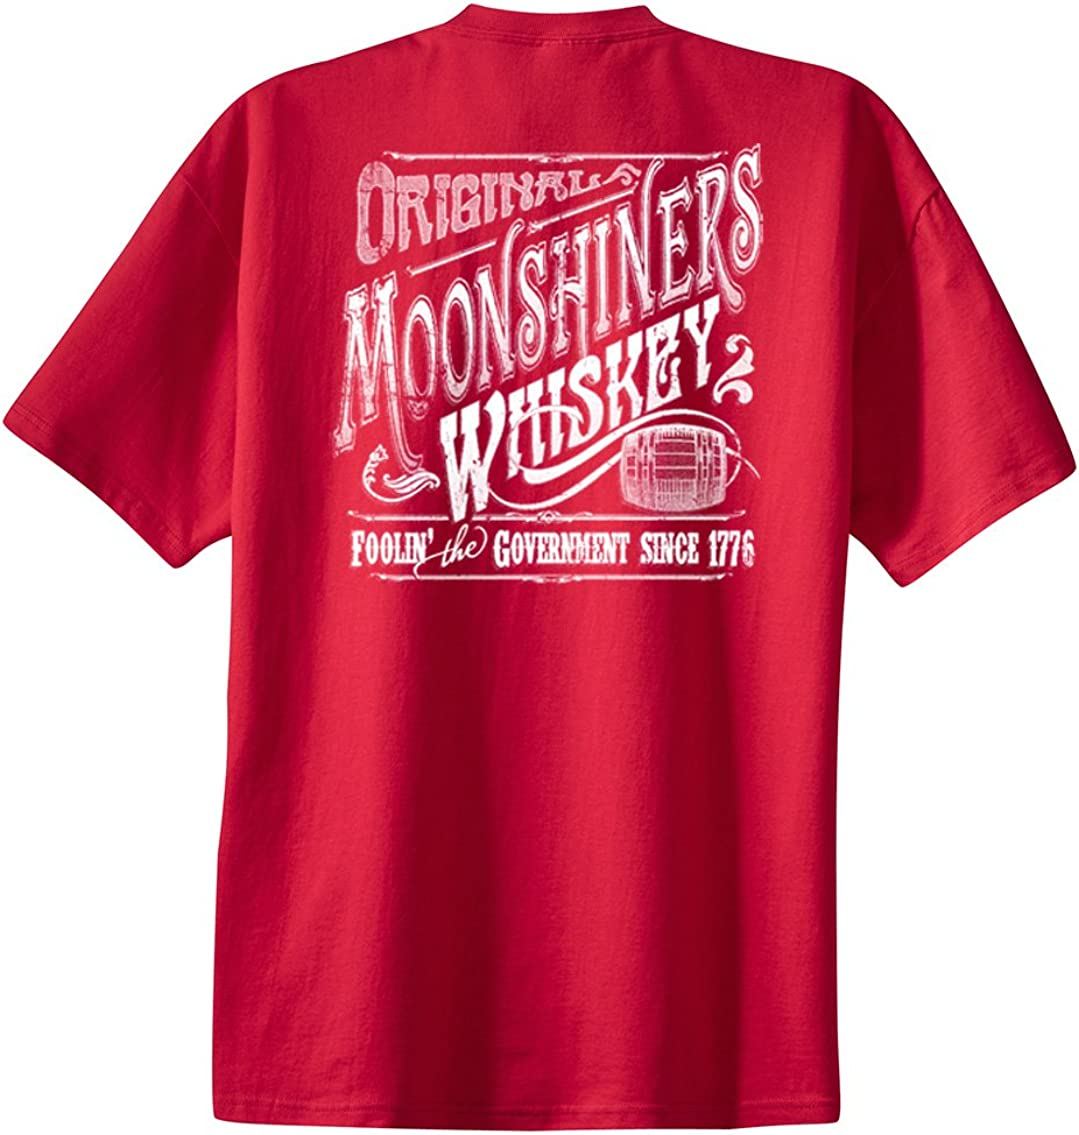 Original Moonshiners Whiskey Foolin' The Government Since 1776 Funny Alcohol Party Moonshine Shine Gin Rum